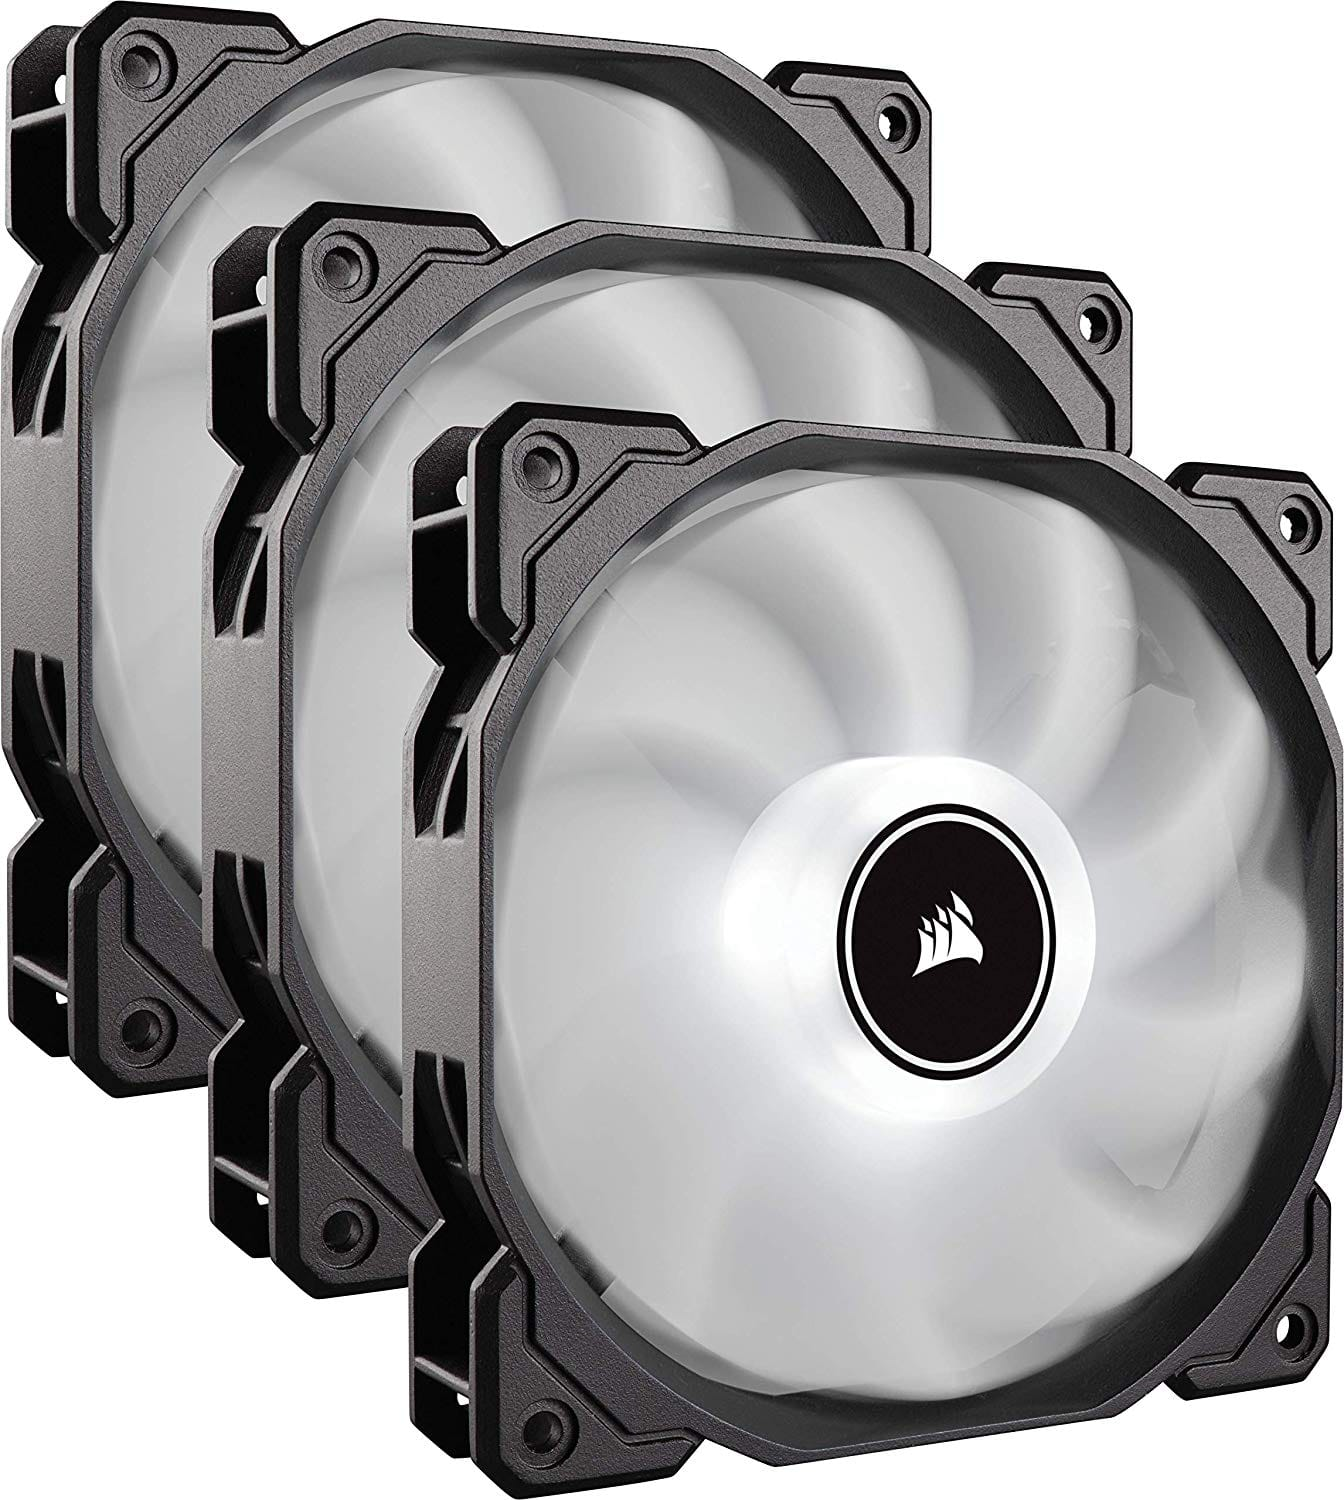 CORSAIR AF120 LED Low Noise Cooling Fan Triple Pack - White Cooling CO-9050082-WW [3 Pack] for $29.99